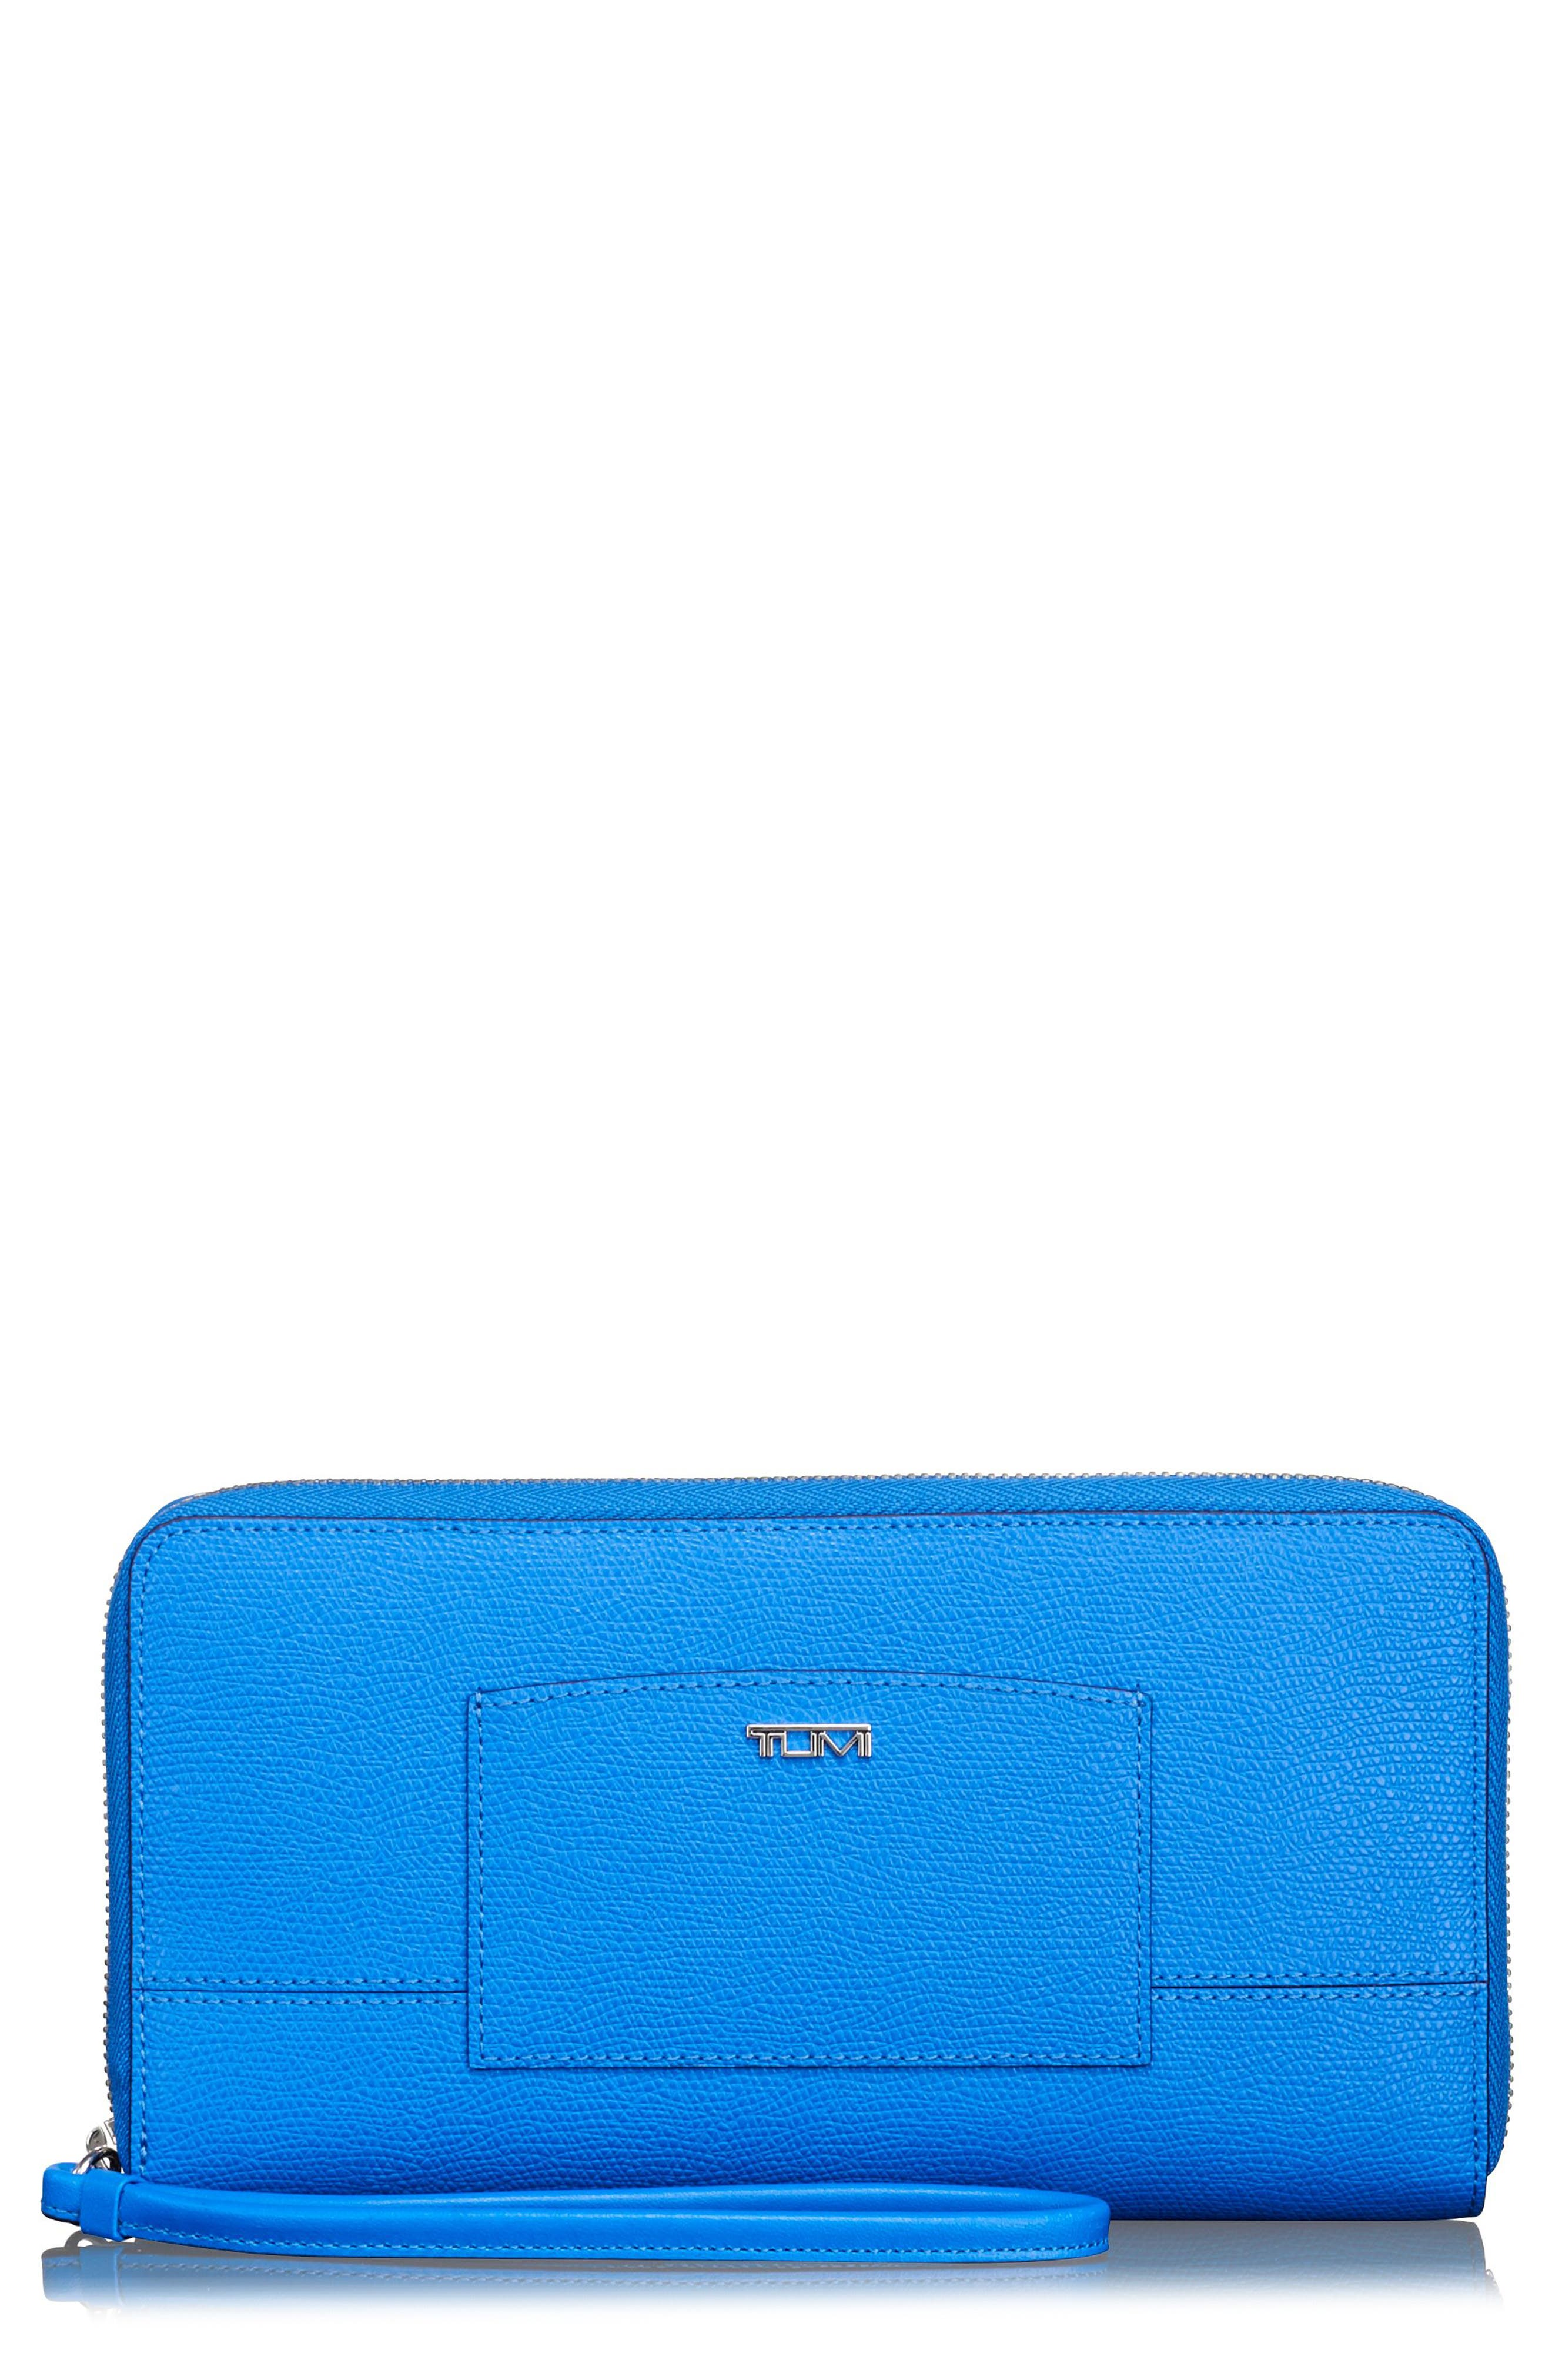 Travel Wallet,                         Main,                         color, Electric Blue